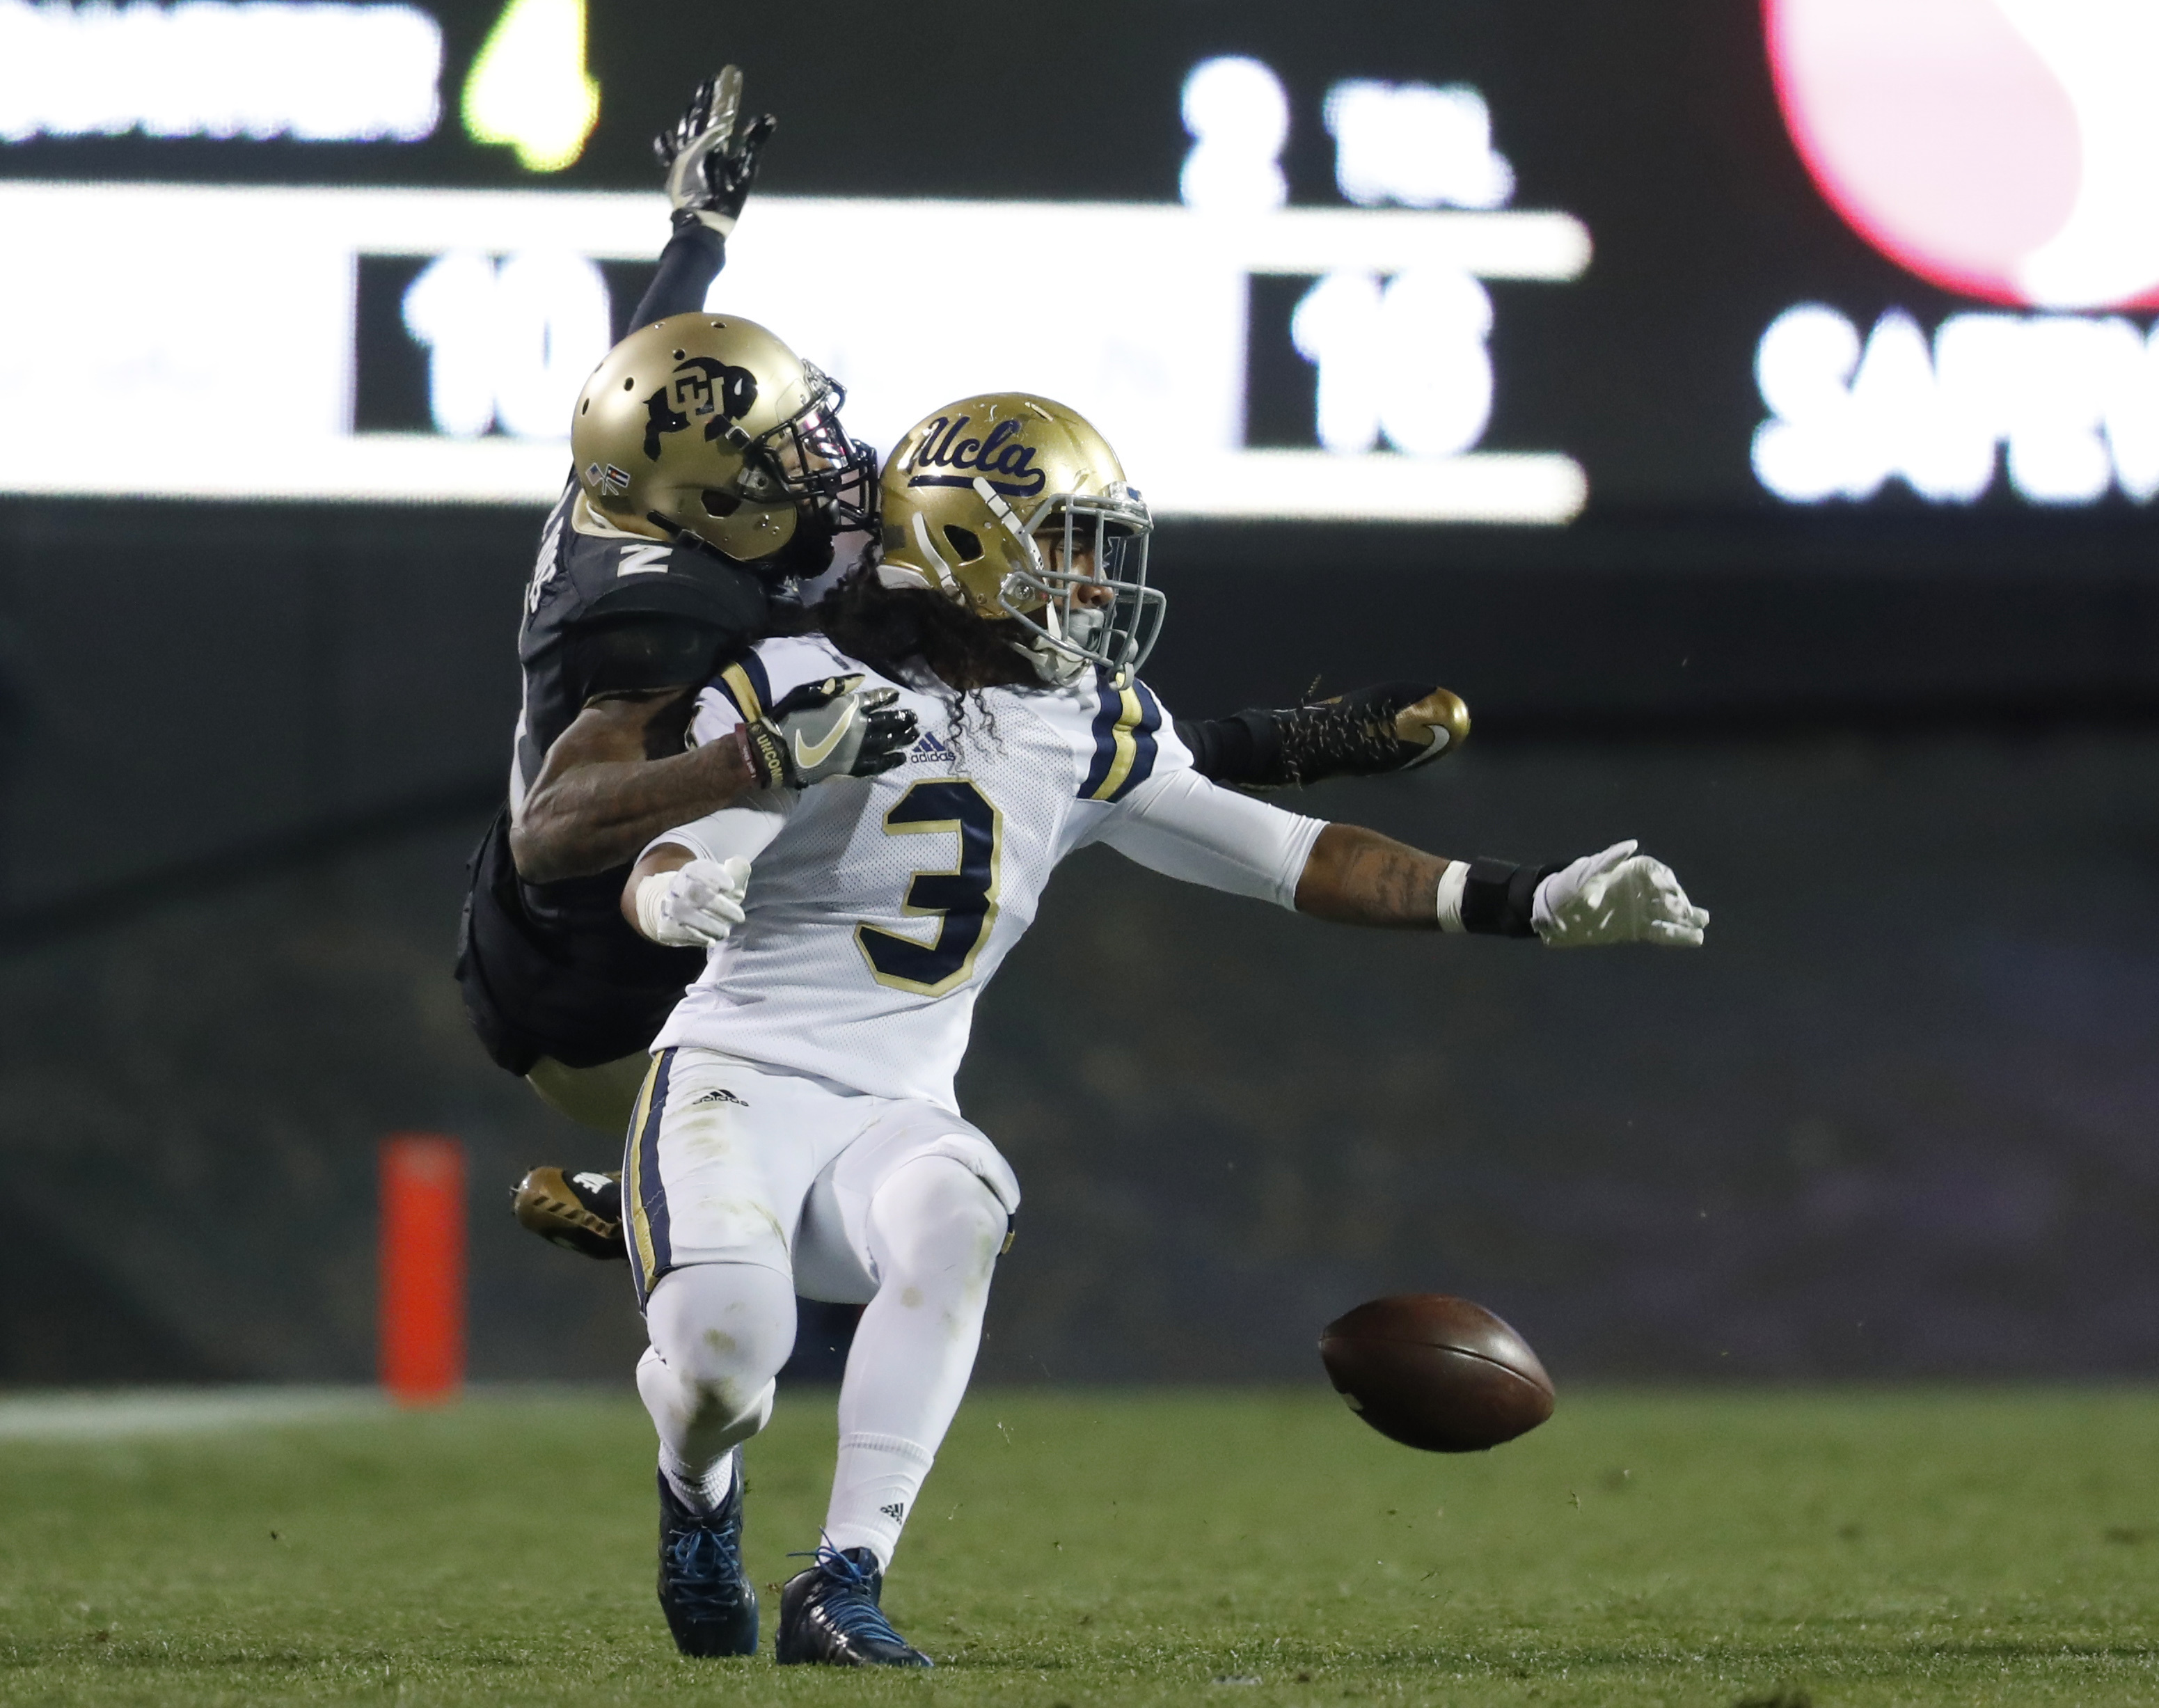 In this Thursday, Nov. 3, 2016, photo, Colorado wide receiver Devin Ross, left, pulls down UCLA defensive back Randall Goforth as he tries to intercept a pass intended for Ross in the second half of an NCAA college football game in Boulder, Colo. Colorado